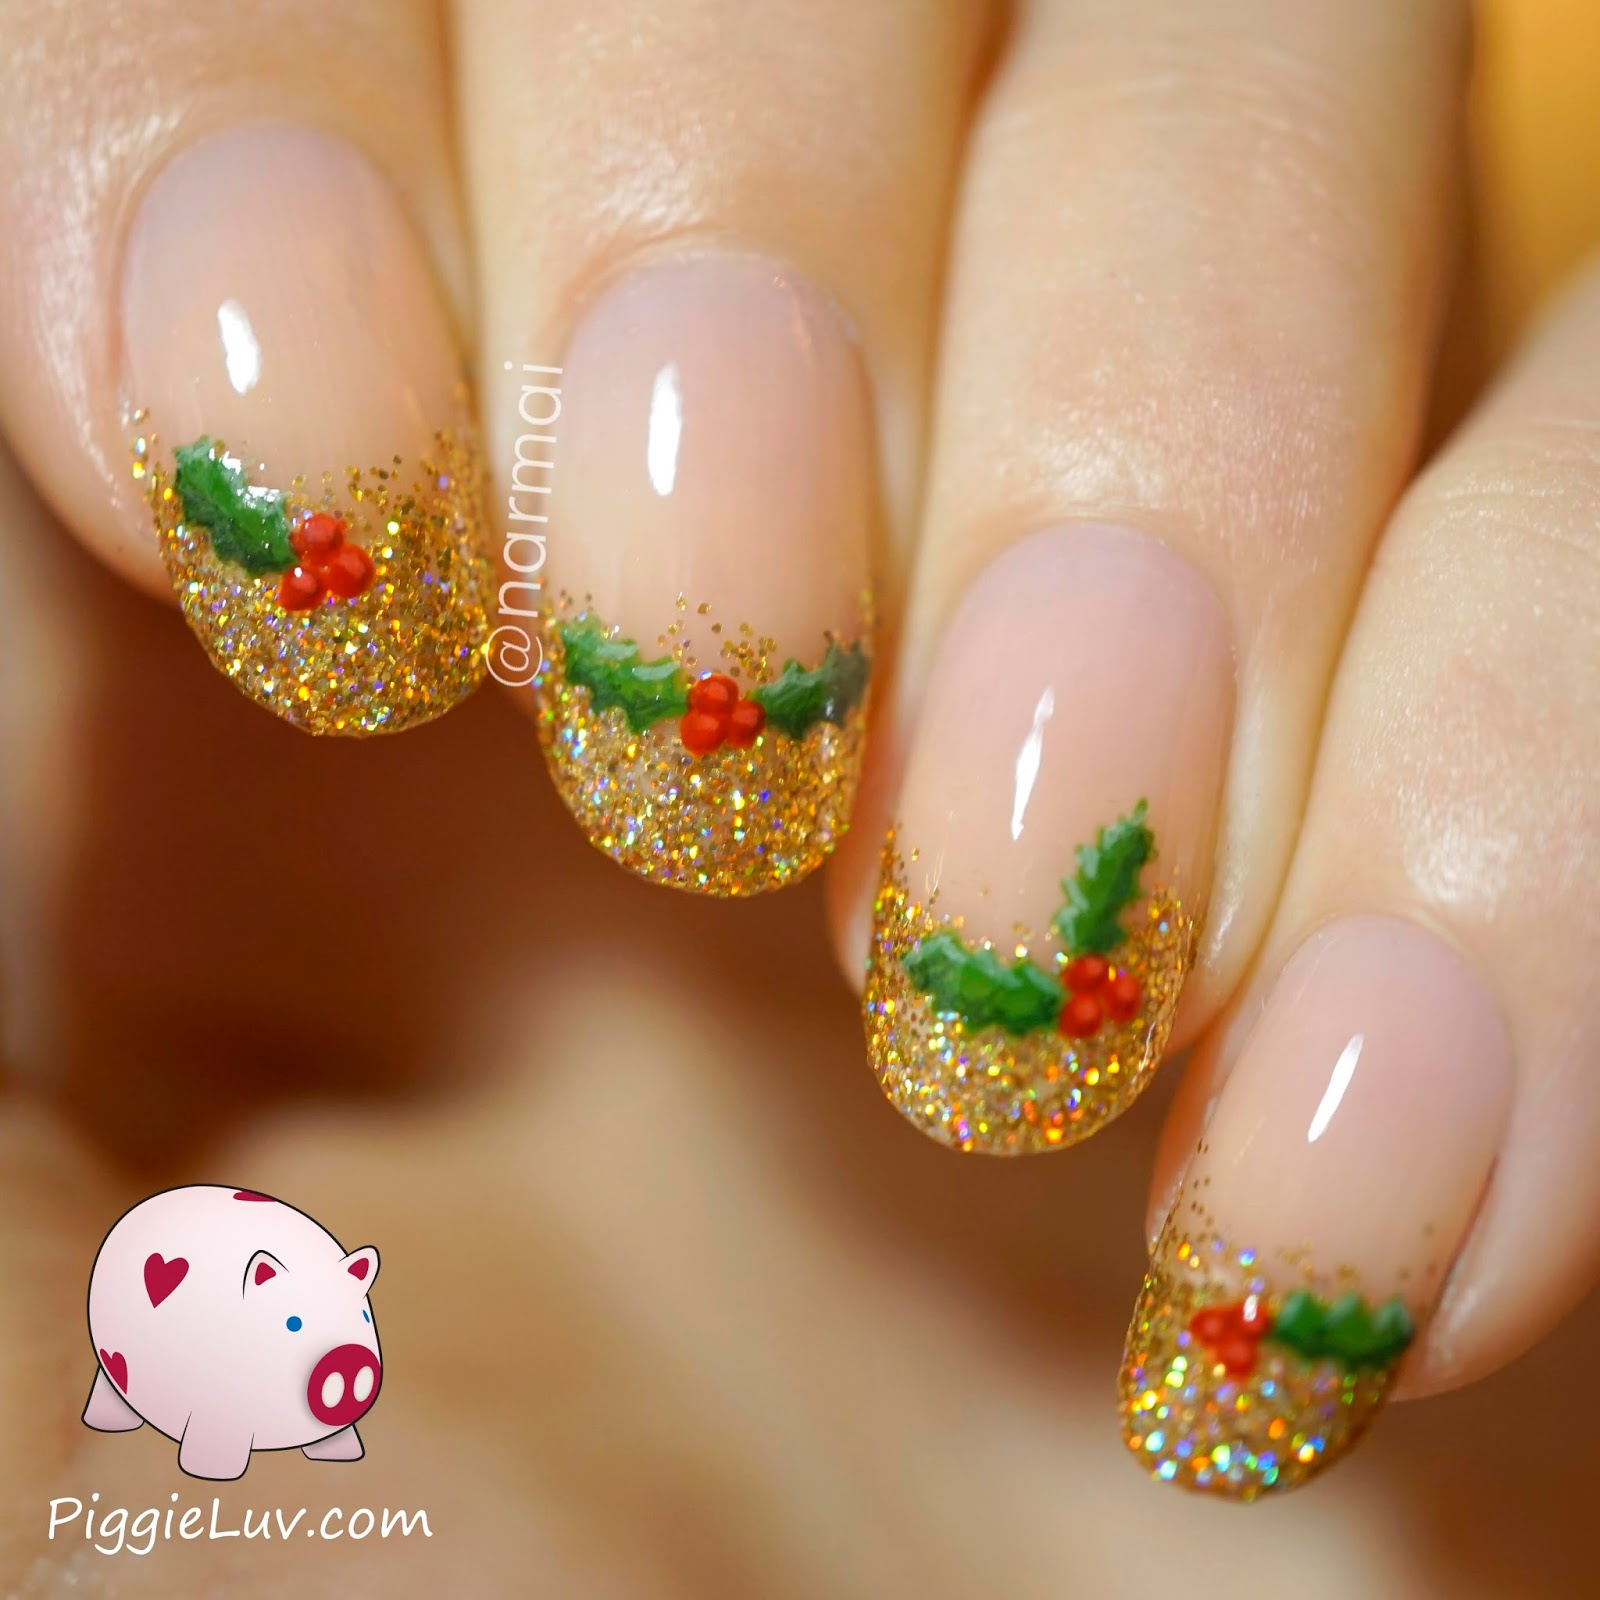 PiggieLuv: Christmas holly nail art